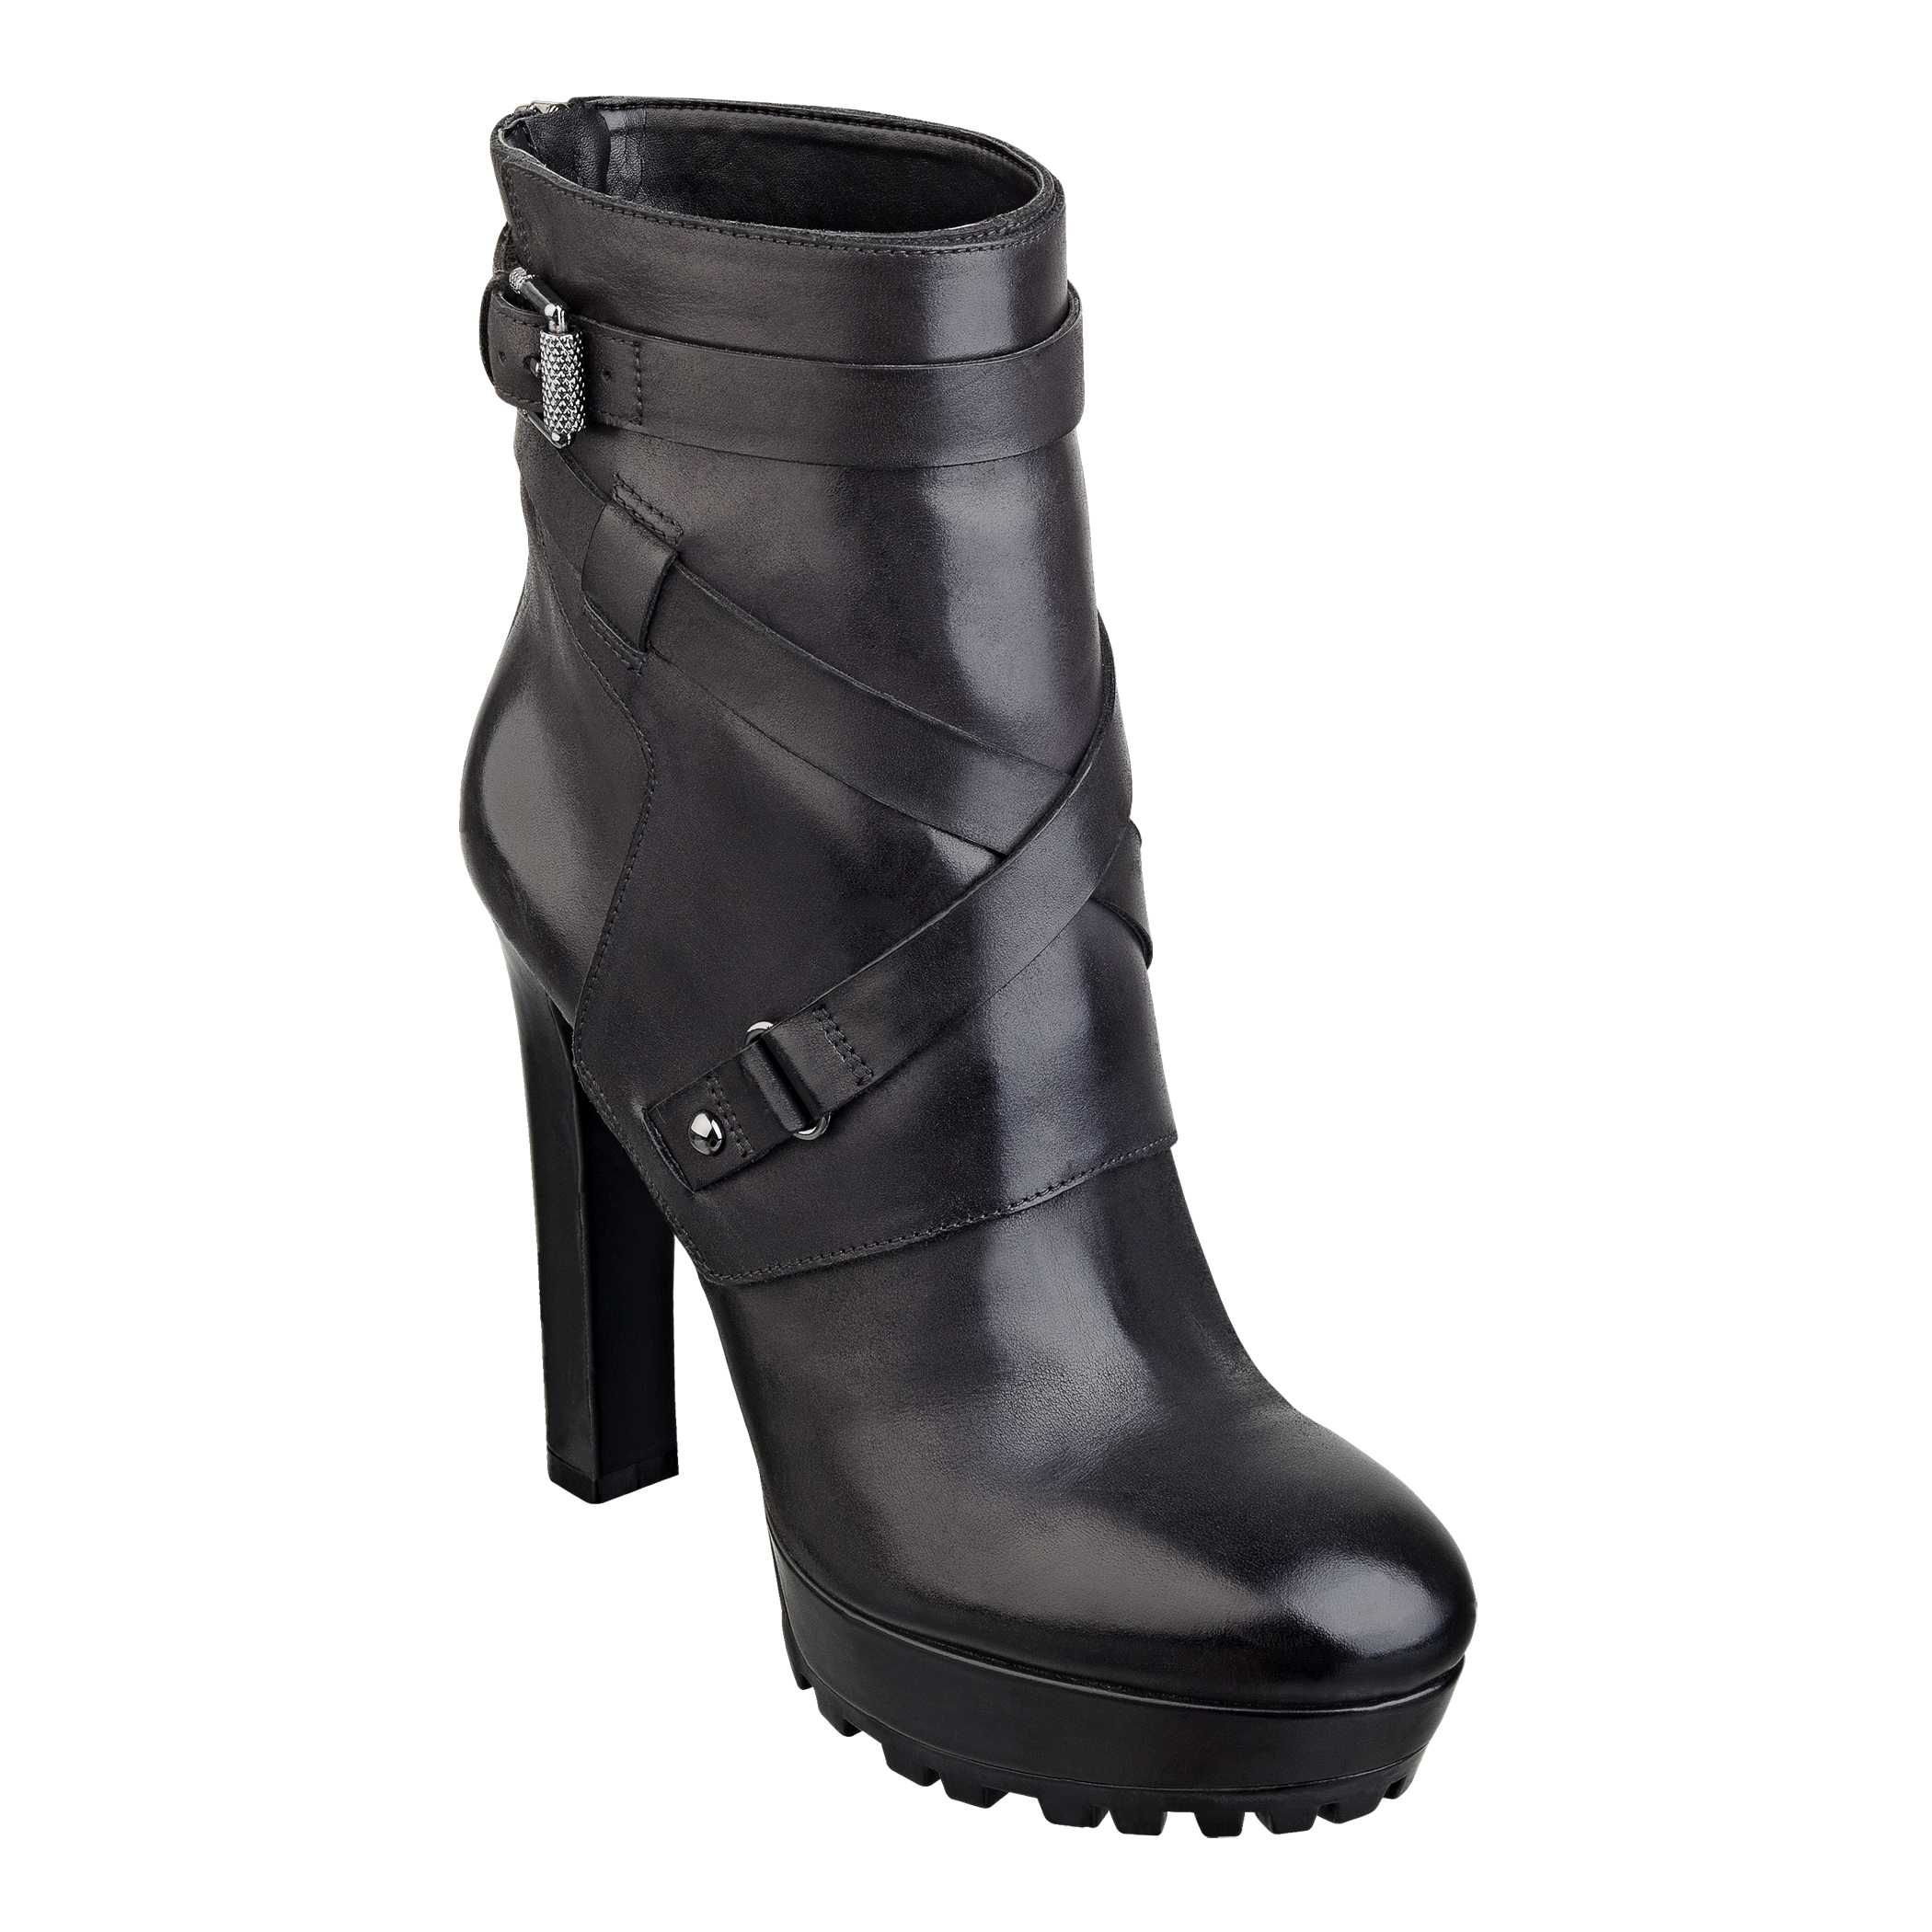 Online shopping for Clothing, Shoes & Jewelry from a great selection of Sandals, Boots, Pumps, Fashion Sneakers, Footwear & more at everyday low prices.